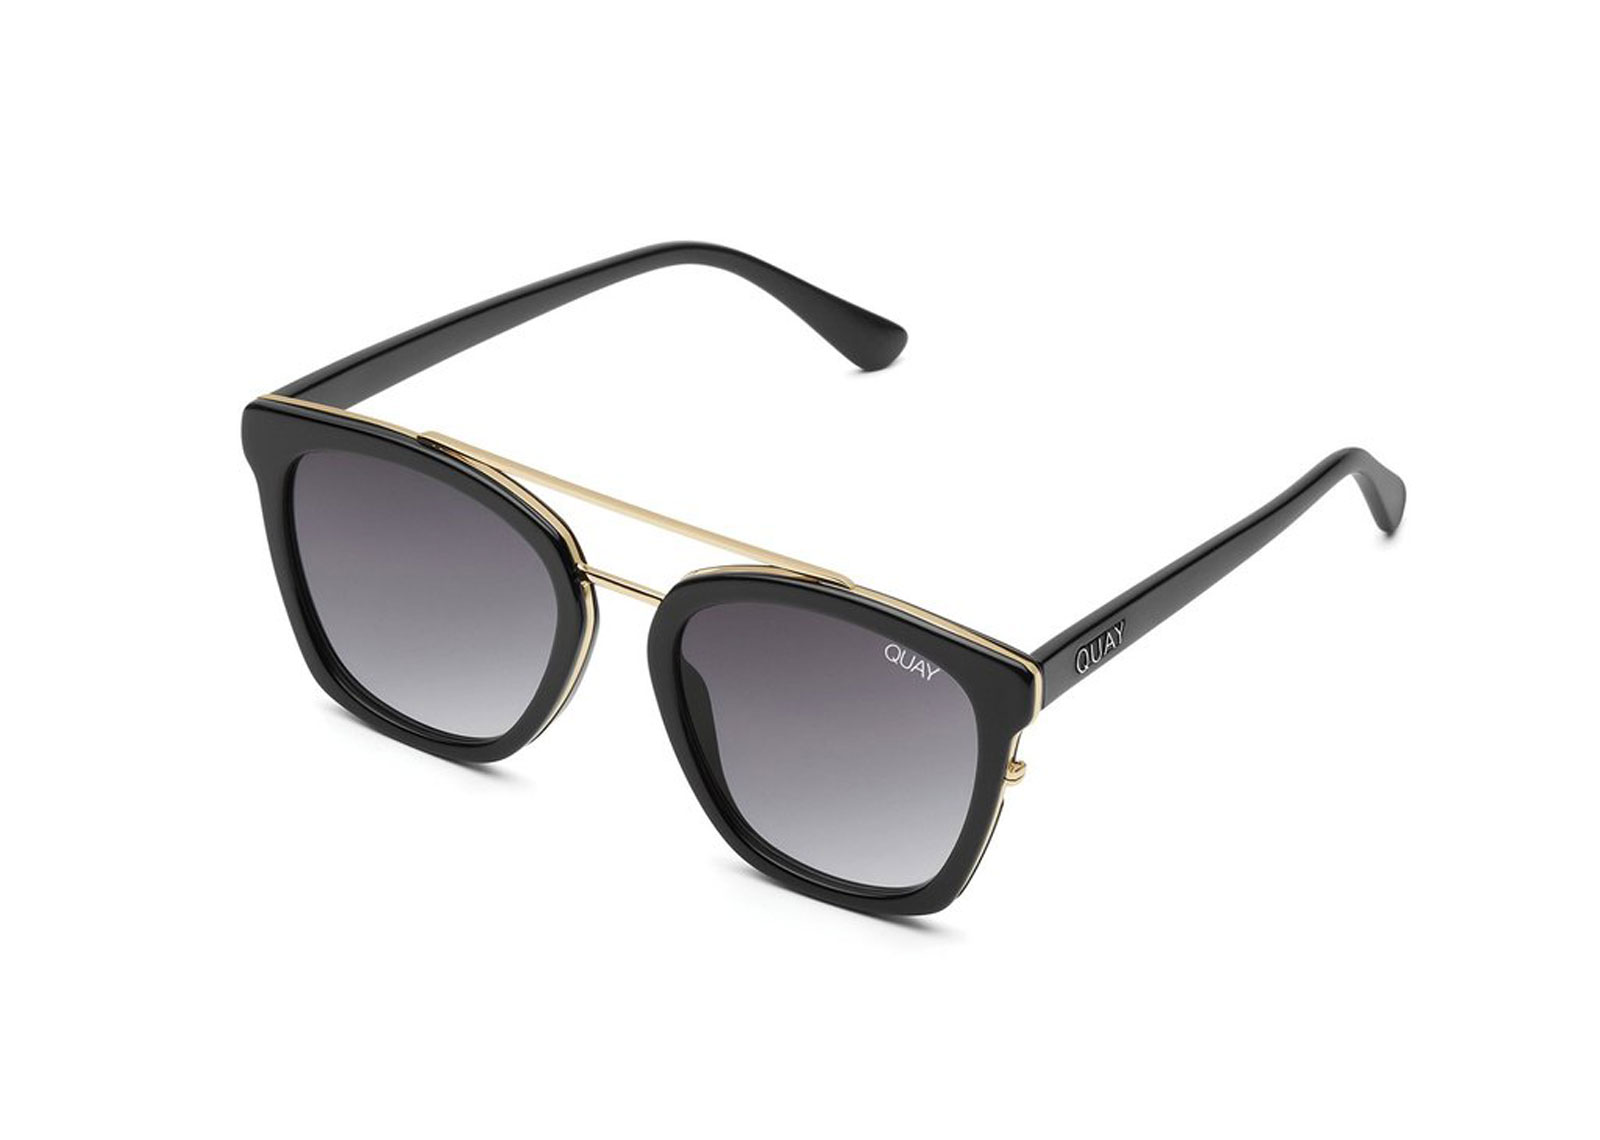 Black and gold sunglasses